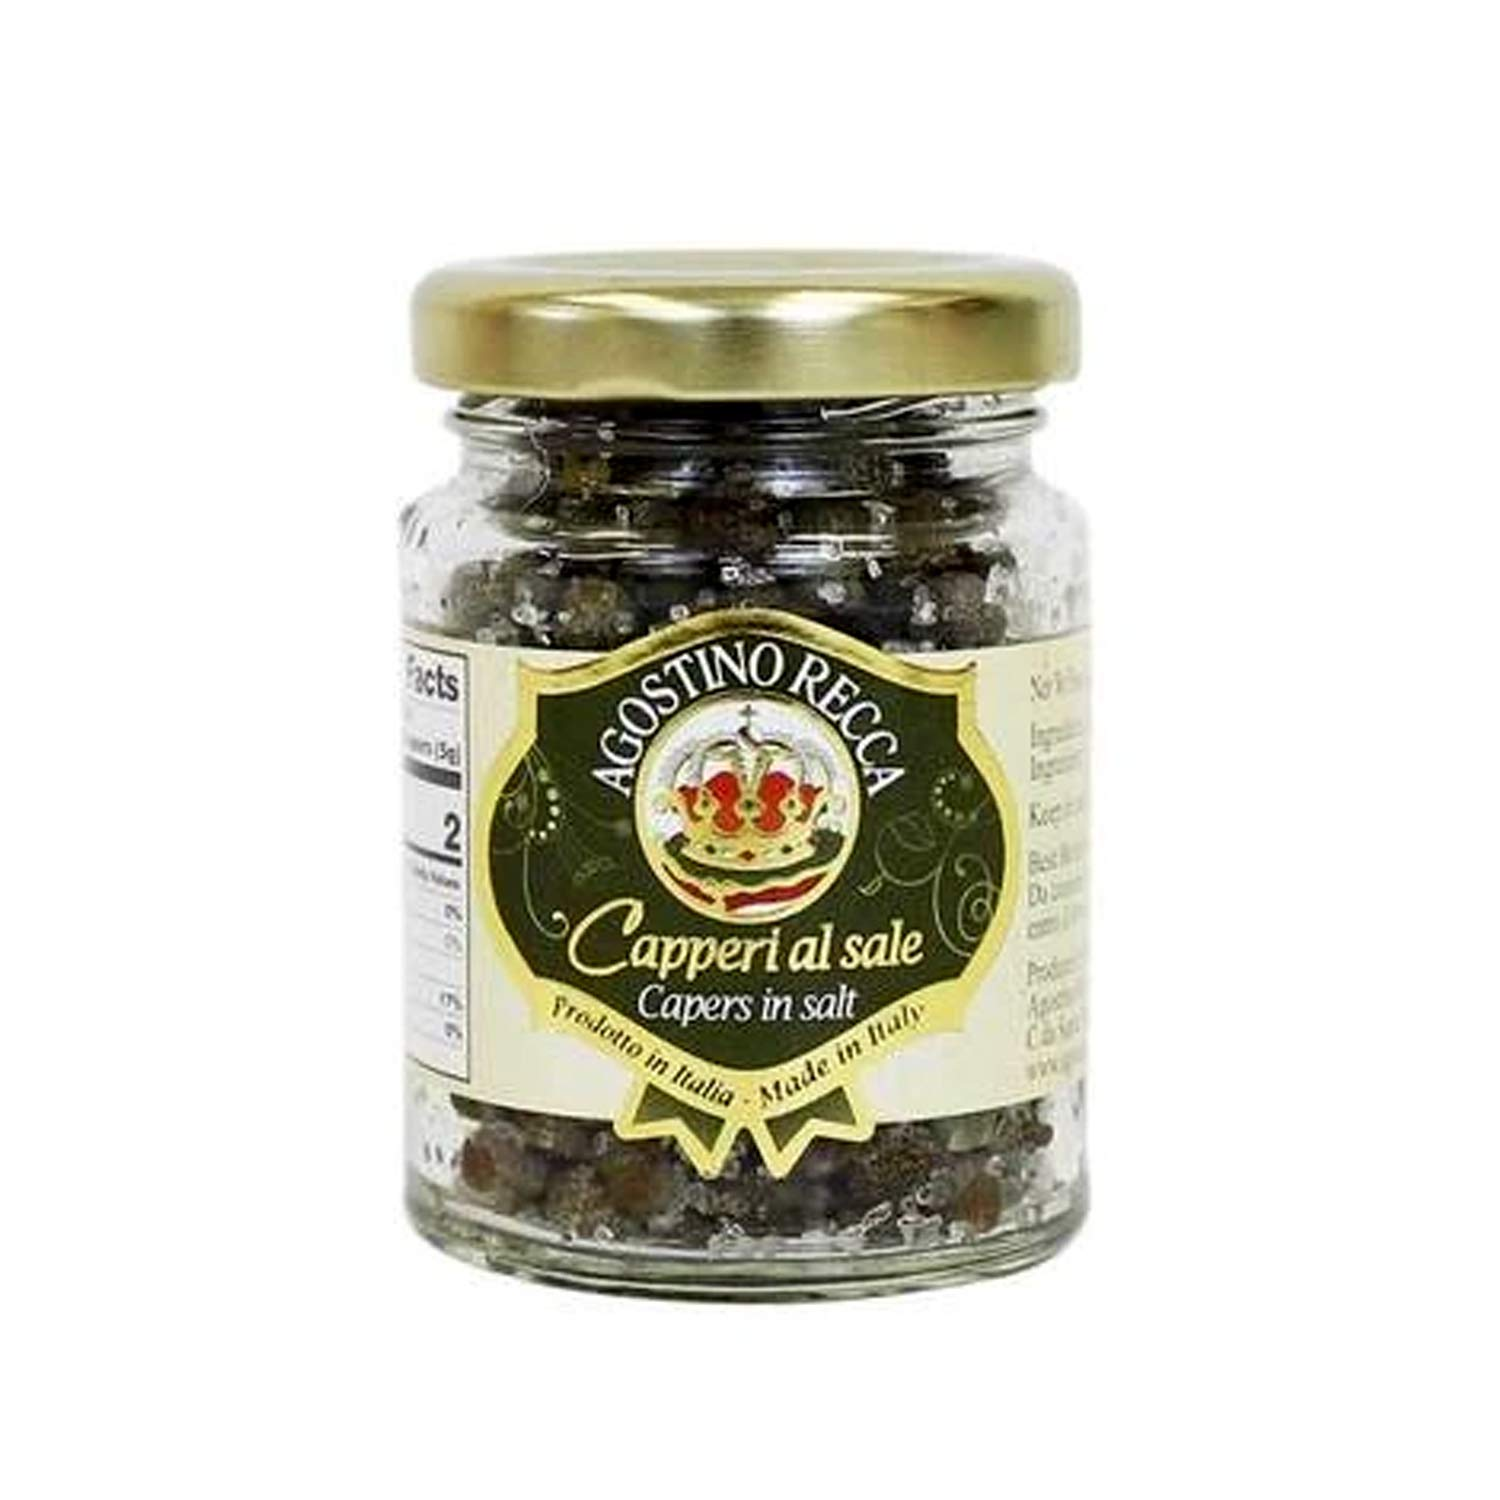 Agostino Recca Capers in Sea Salt - Pickled Capers Best for Sauces, Meats, & Garnishes (2.2 oz)